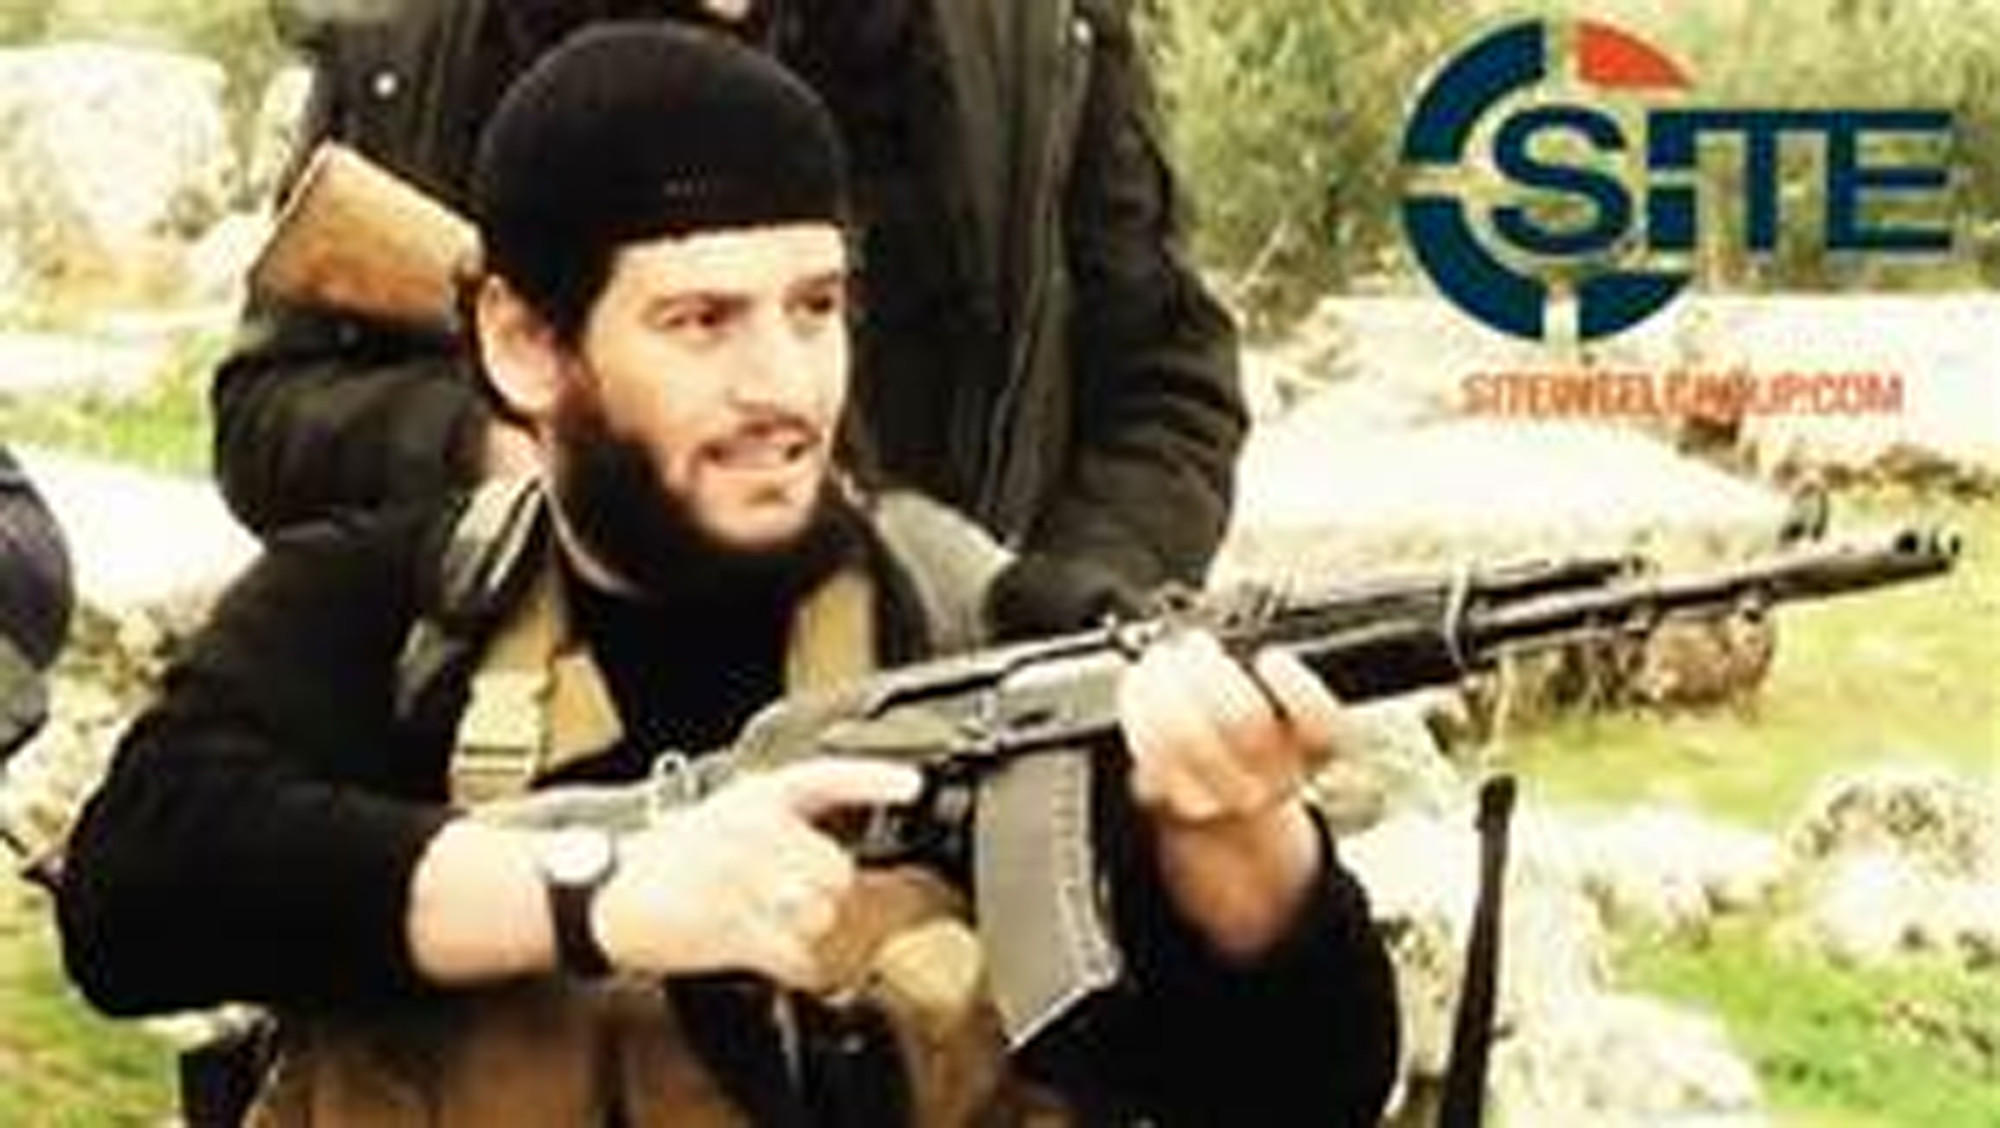 Adnani, the Islamic State militant group's spokesman, is shown in this undated image provided by SITE Intelligence Group.